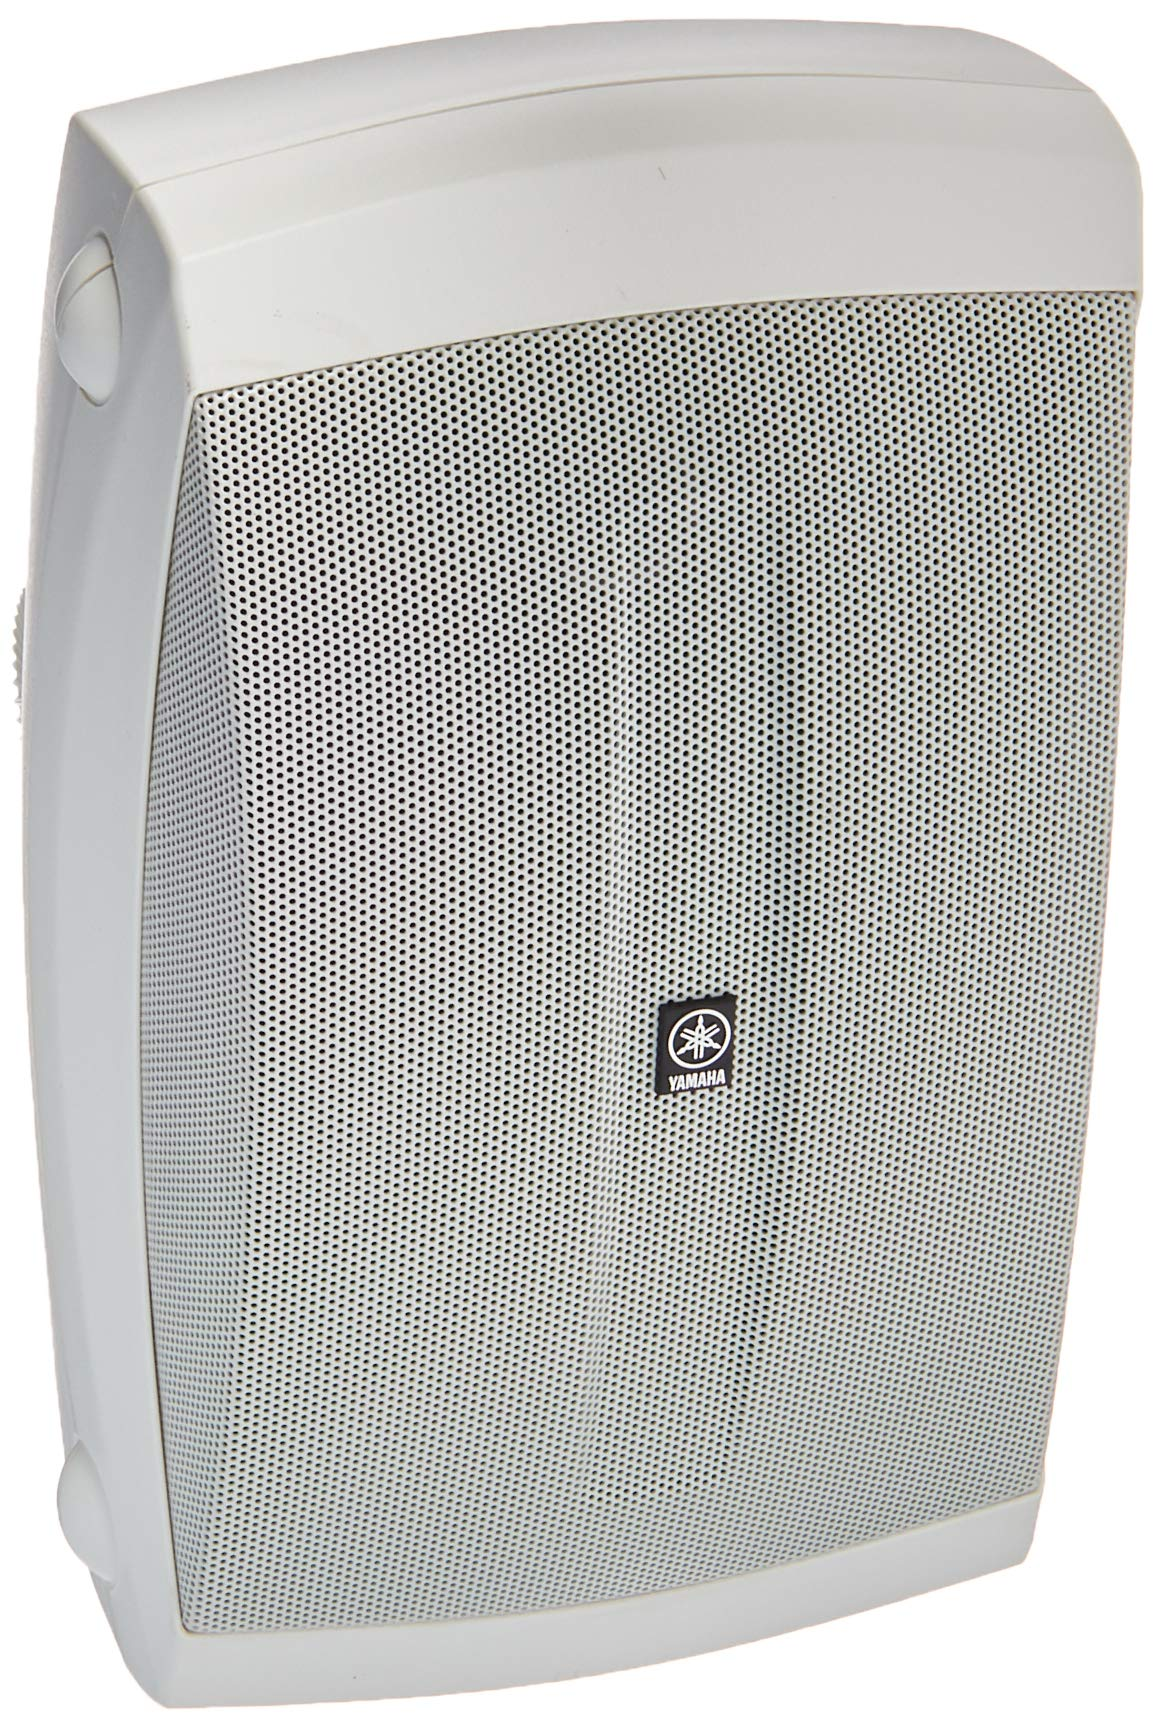 Yamaha NS-AW150WH 2-Way Indoor/Outdoor Speakers (Pair, White) by Yamaha Audio